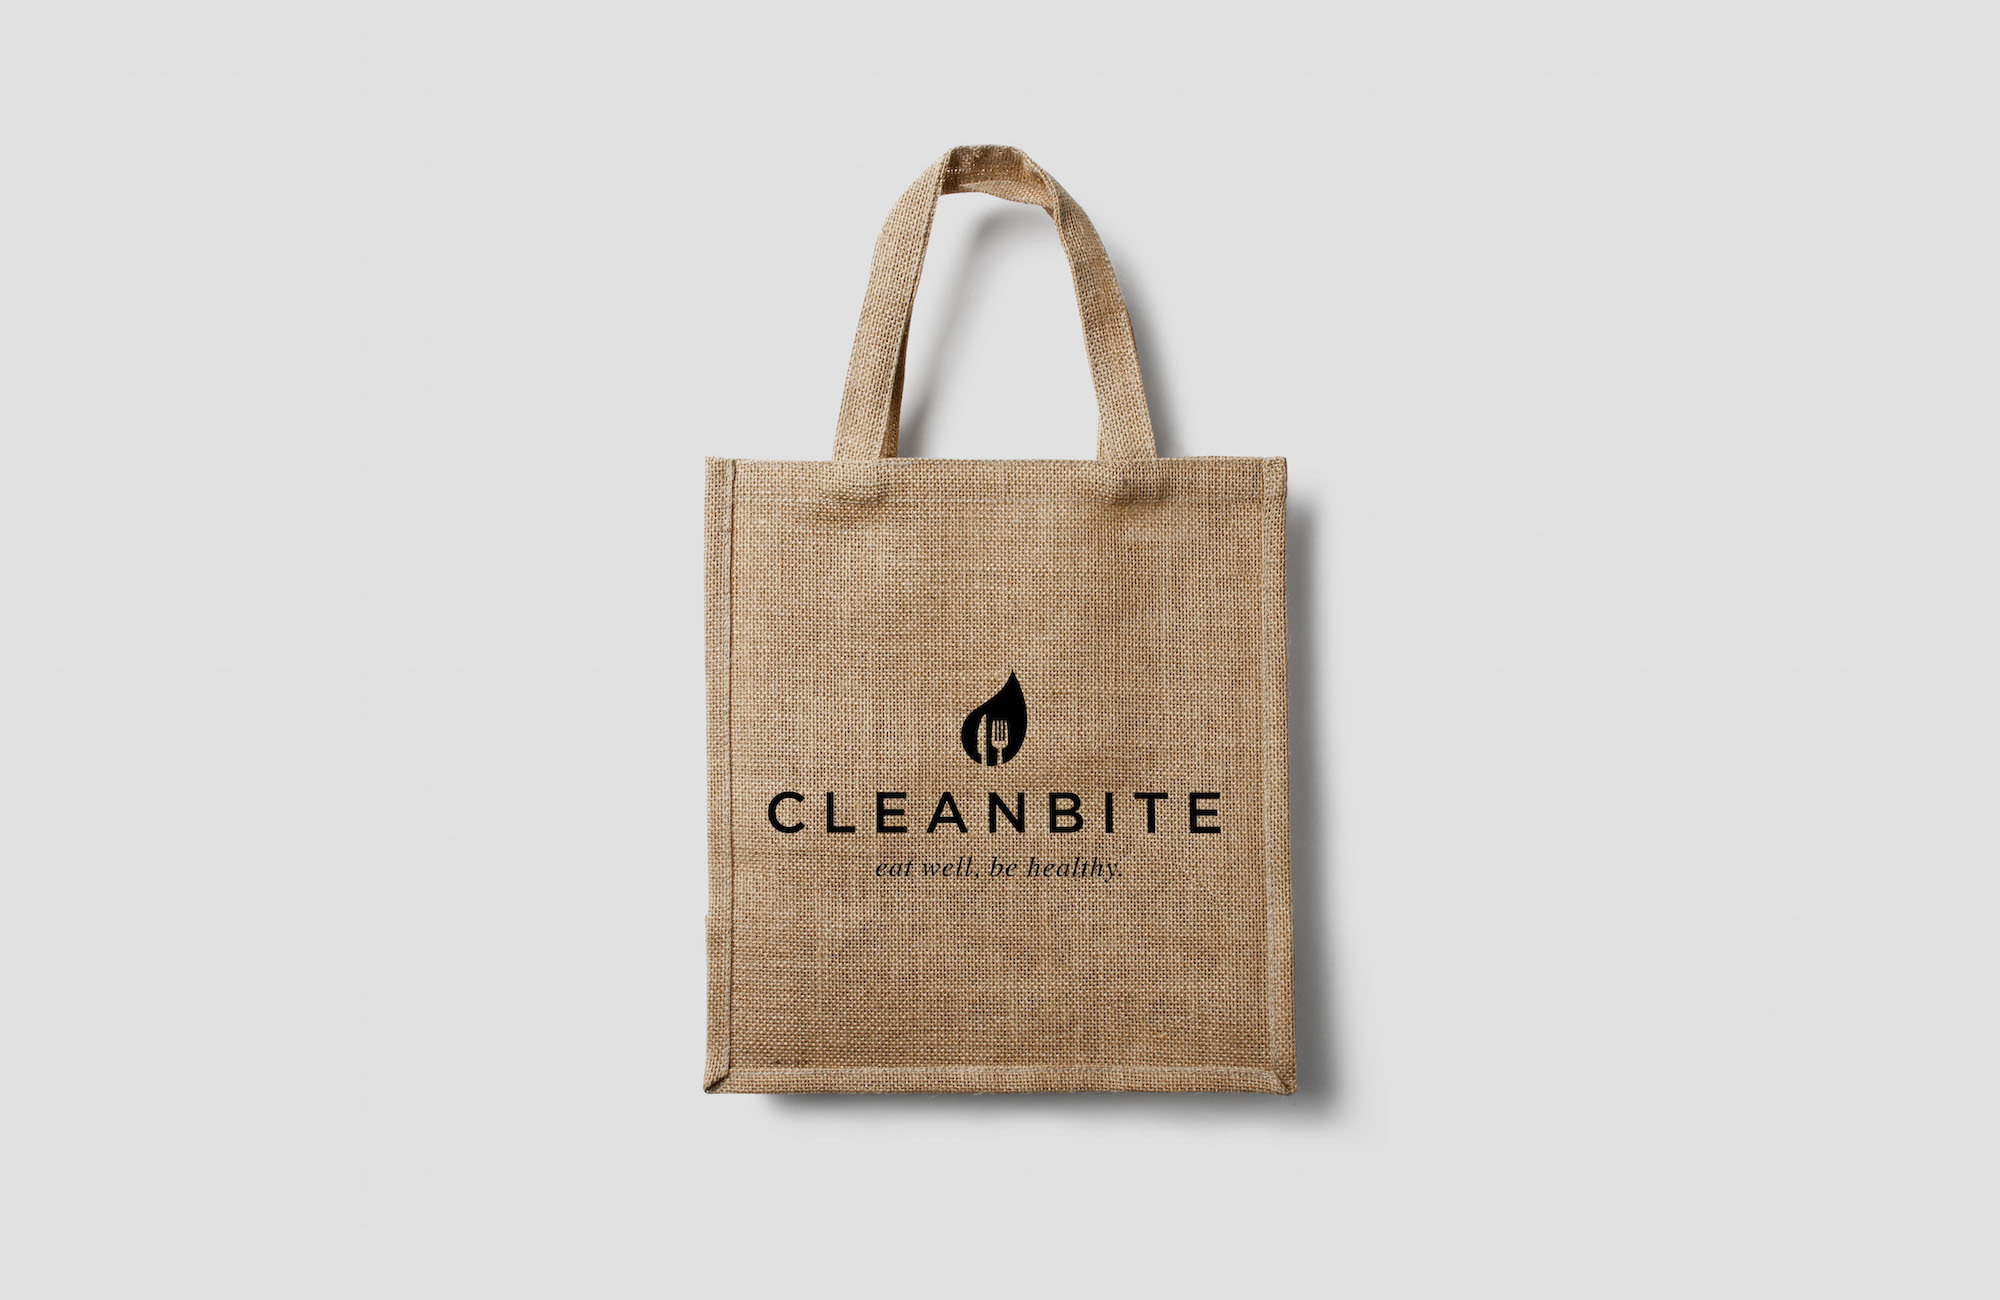 Cleanbite tote bag design Cardiff